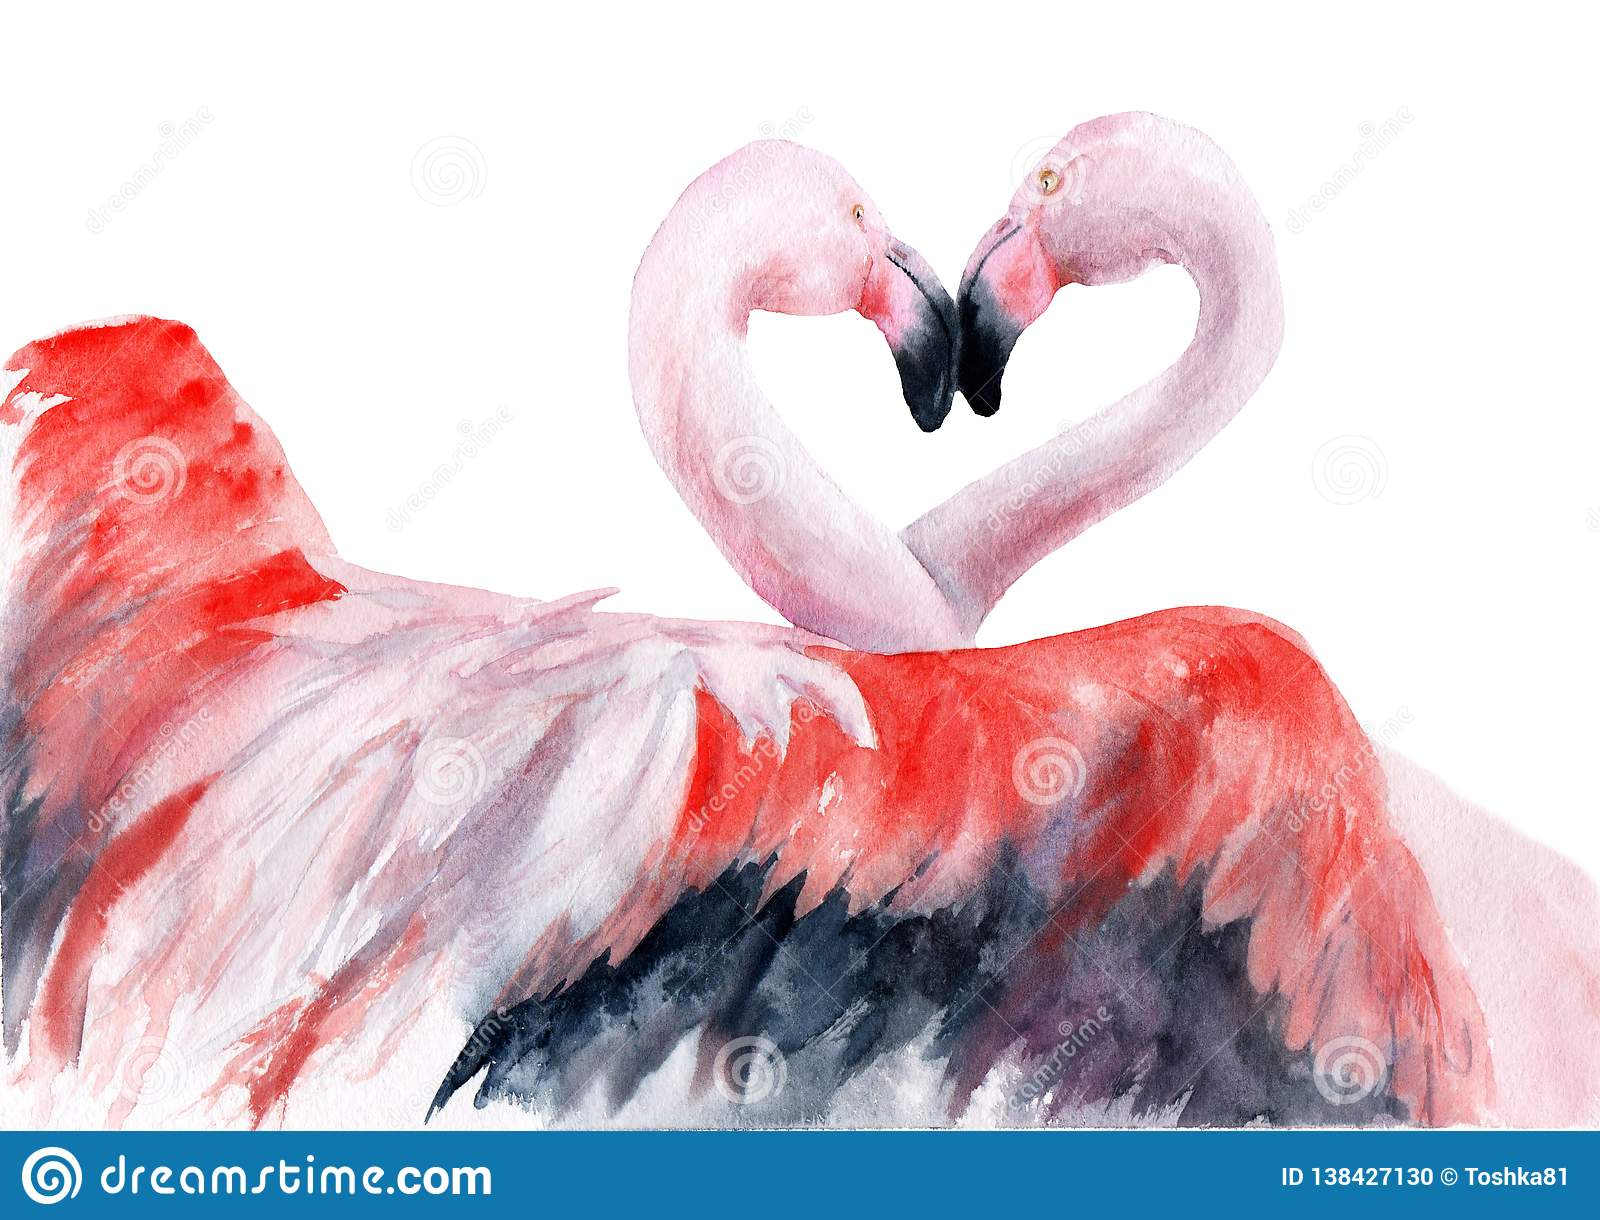 Watercolor Drawing Love Birds Flamingo Kiss Sketch Stock Illustration Illustration Of Watercolor Bird 138427130